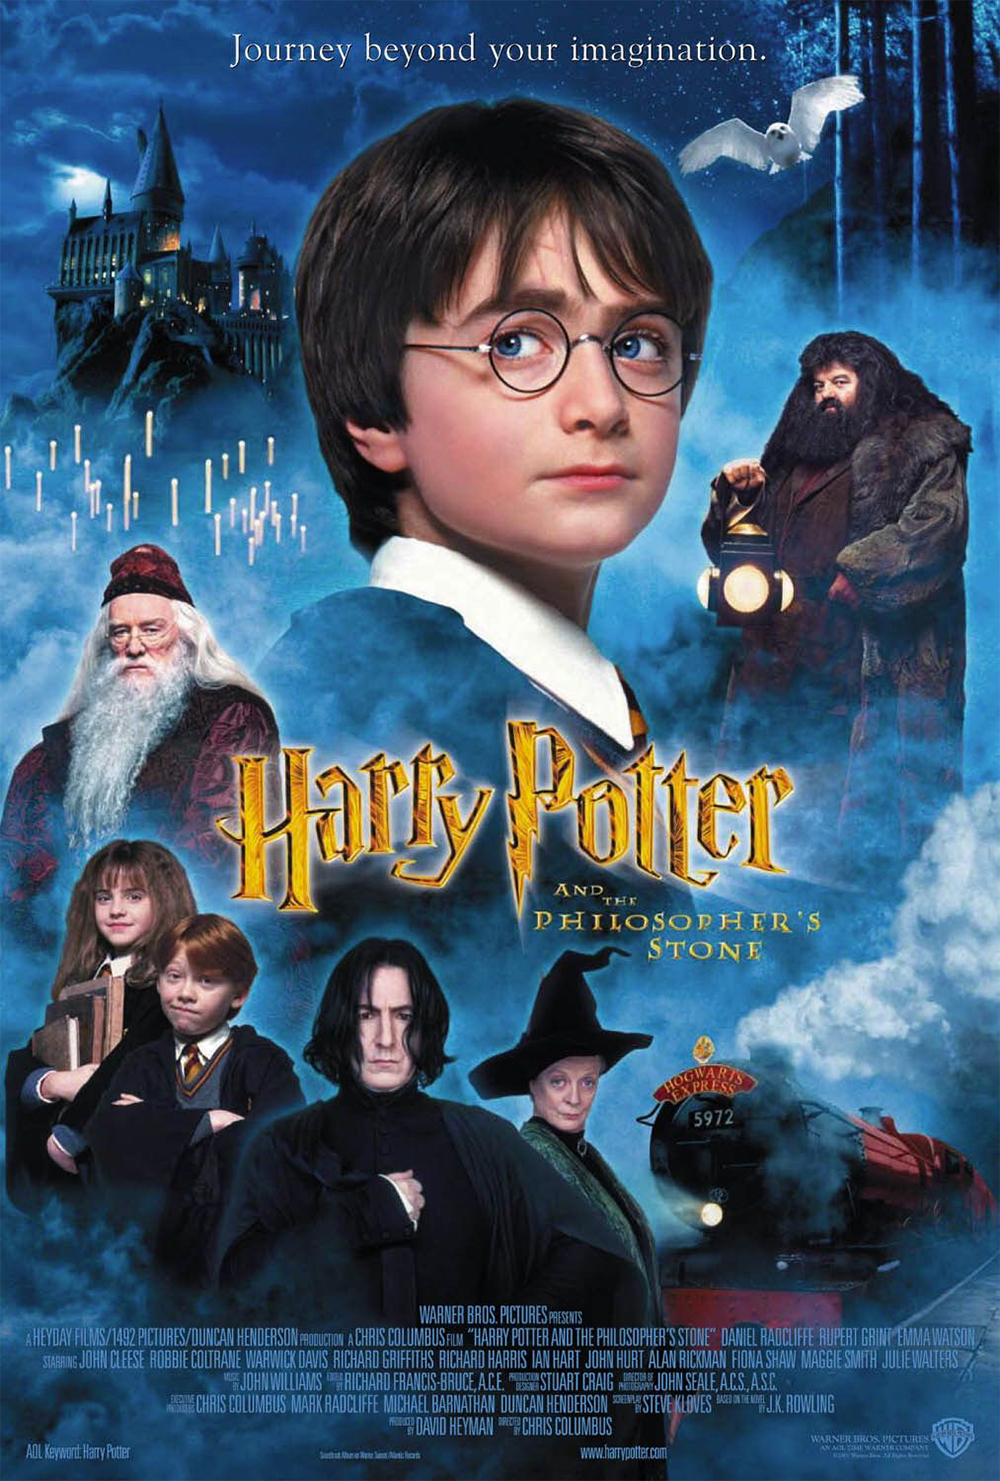 philosophers-stone-theatrical-poster.jpg